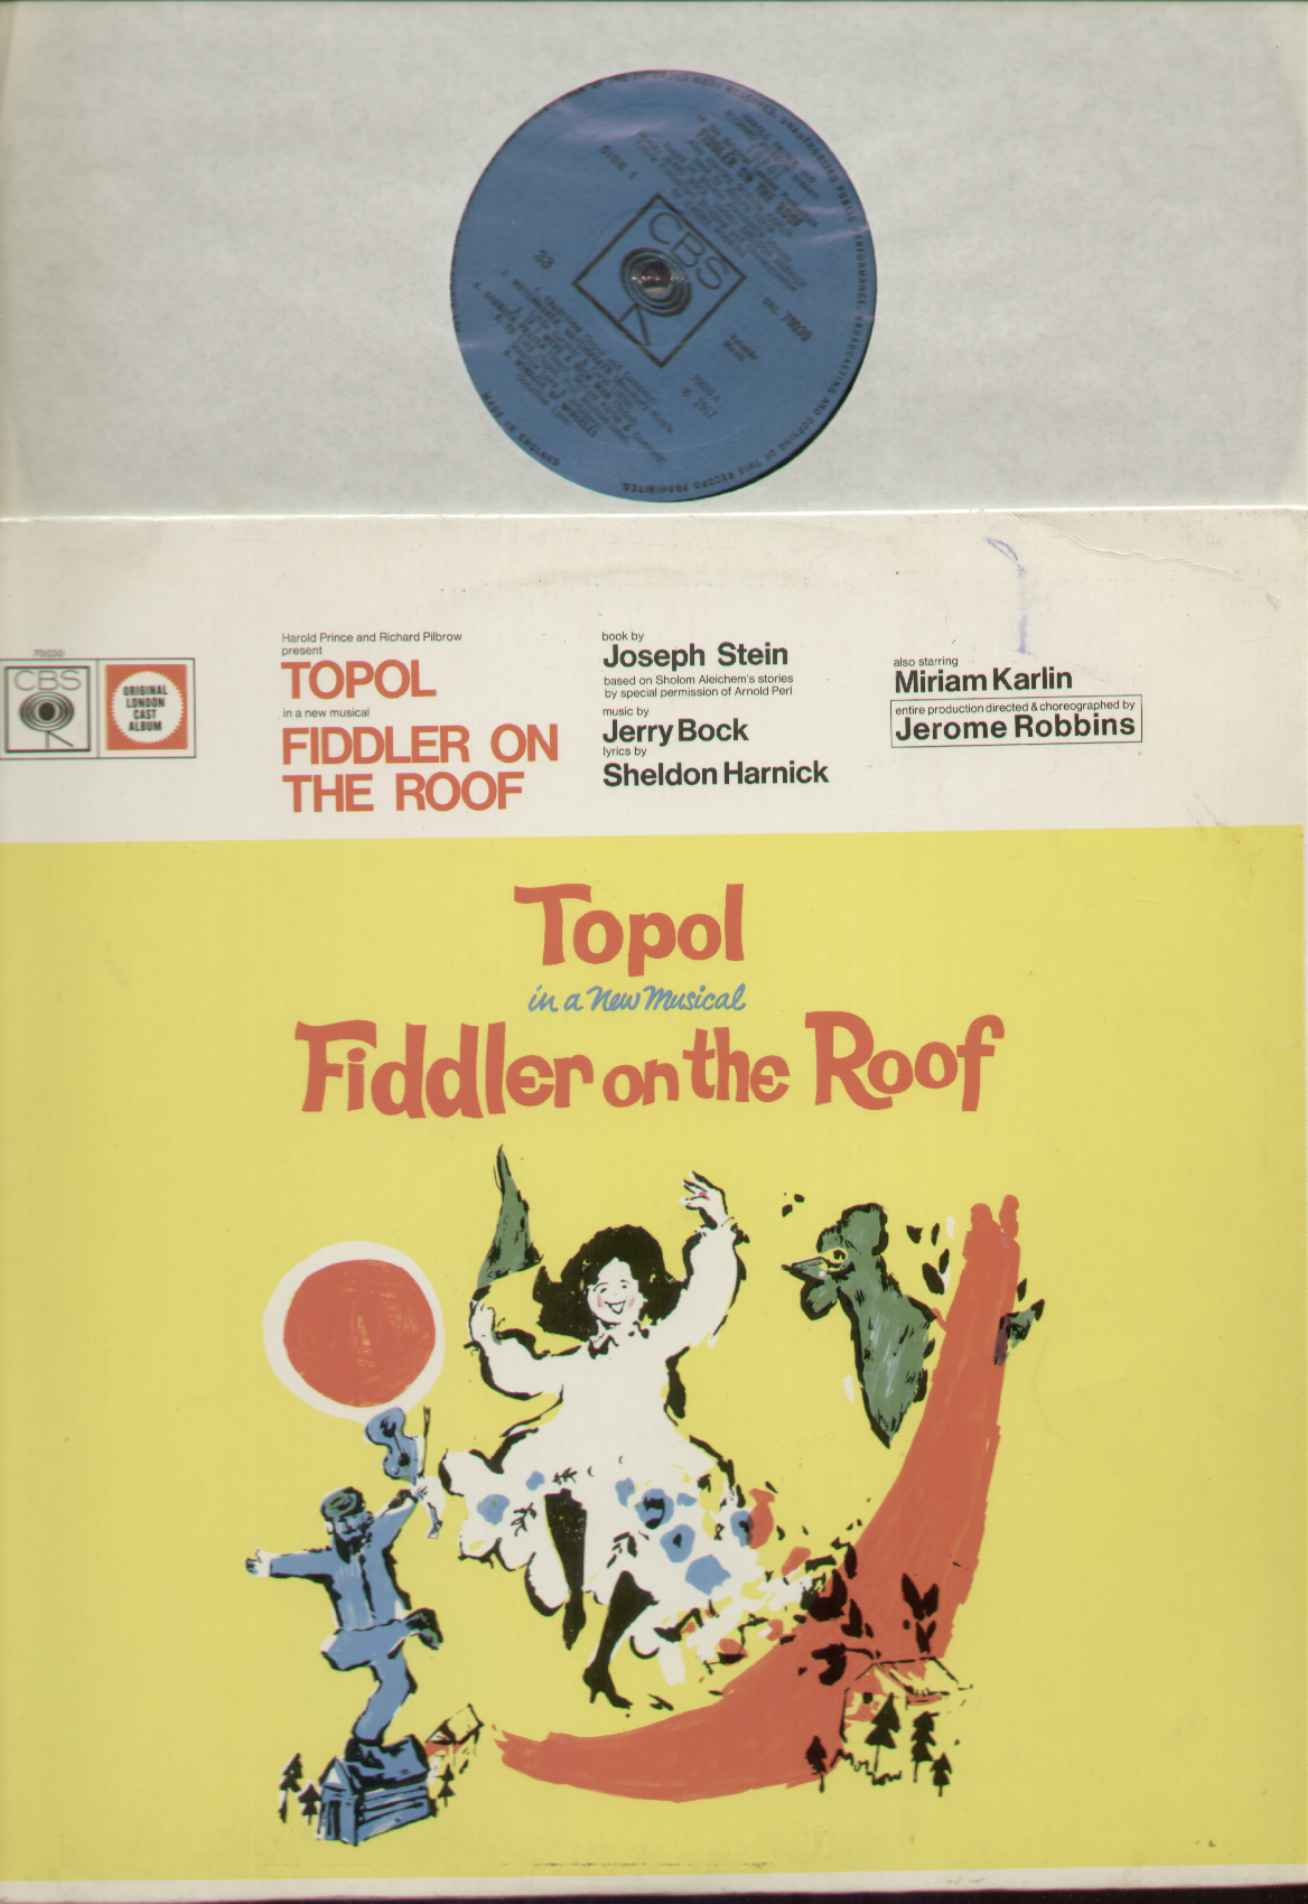 FIDDLER ON THE ROOF - Fiddler On The Roof 1967 ORIGINAL BLUE LABEL CBS 1960'S PRESSING 13 TRACK - EXCELLENT CONDITION - LP